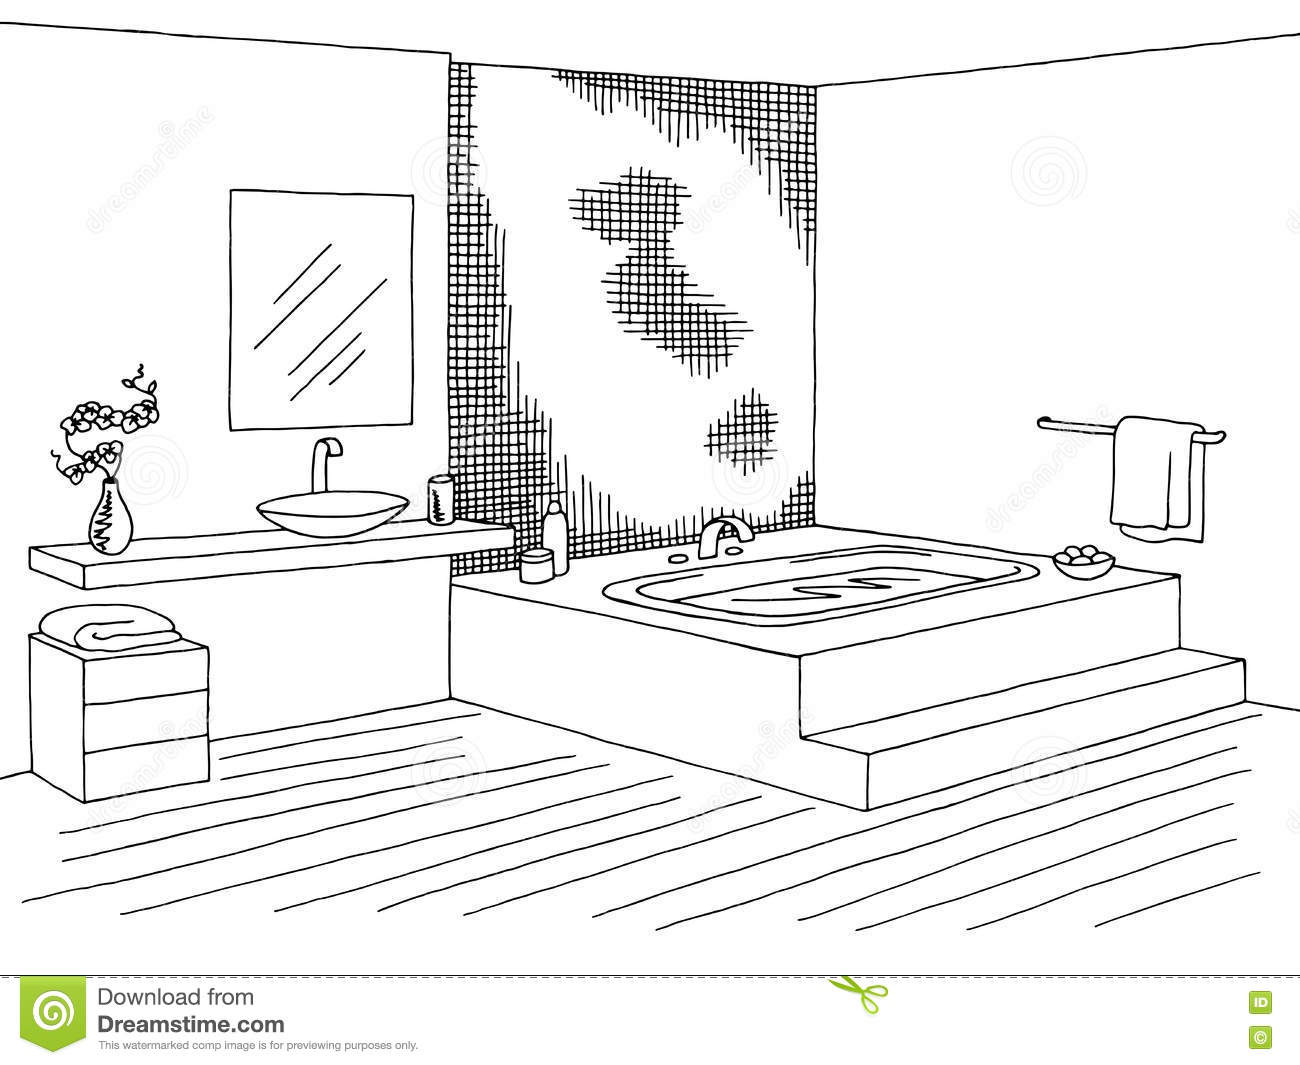 Bathroom clipart black and white - Bathroom Clipart Black And White Bathroom Black Graphic Illustration Interior Sketch Vector White Download